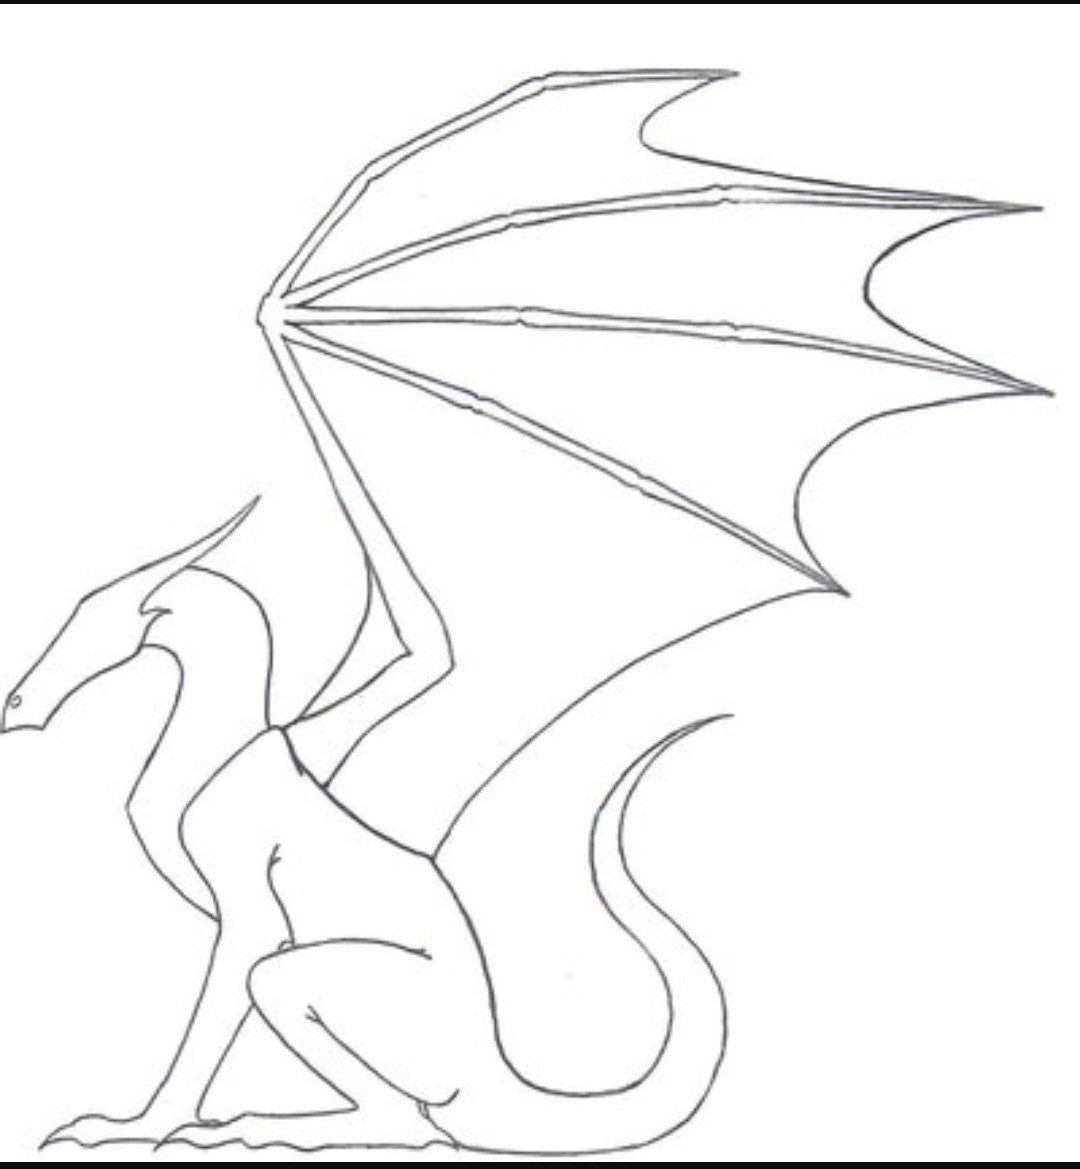 1080x1169 Pin By Silver Girl On Wowzers Can You Draw! Dragons